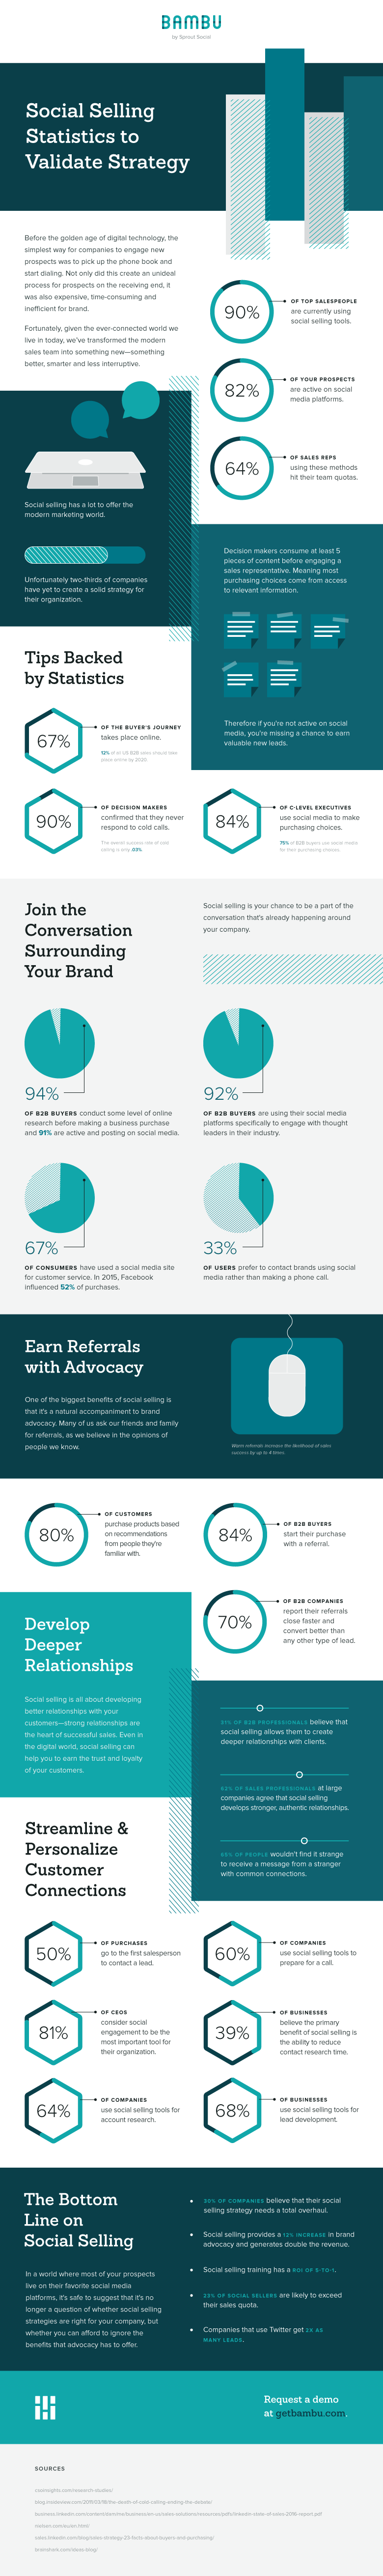 social selling infographic